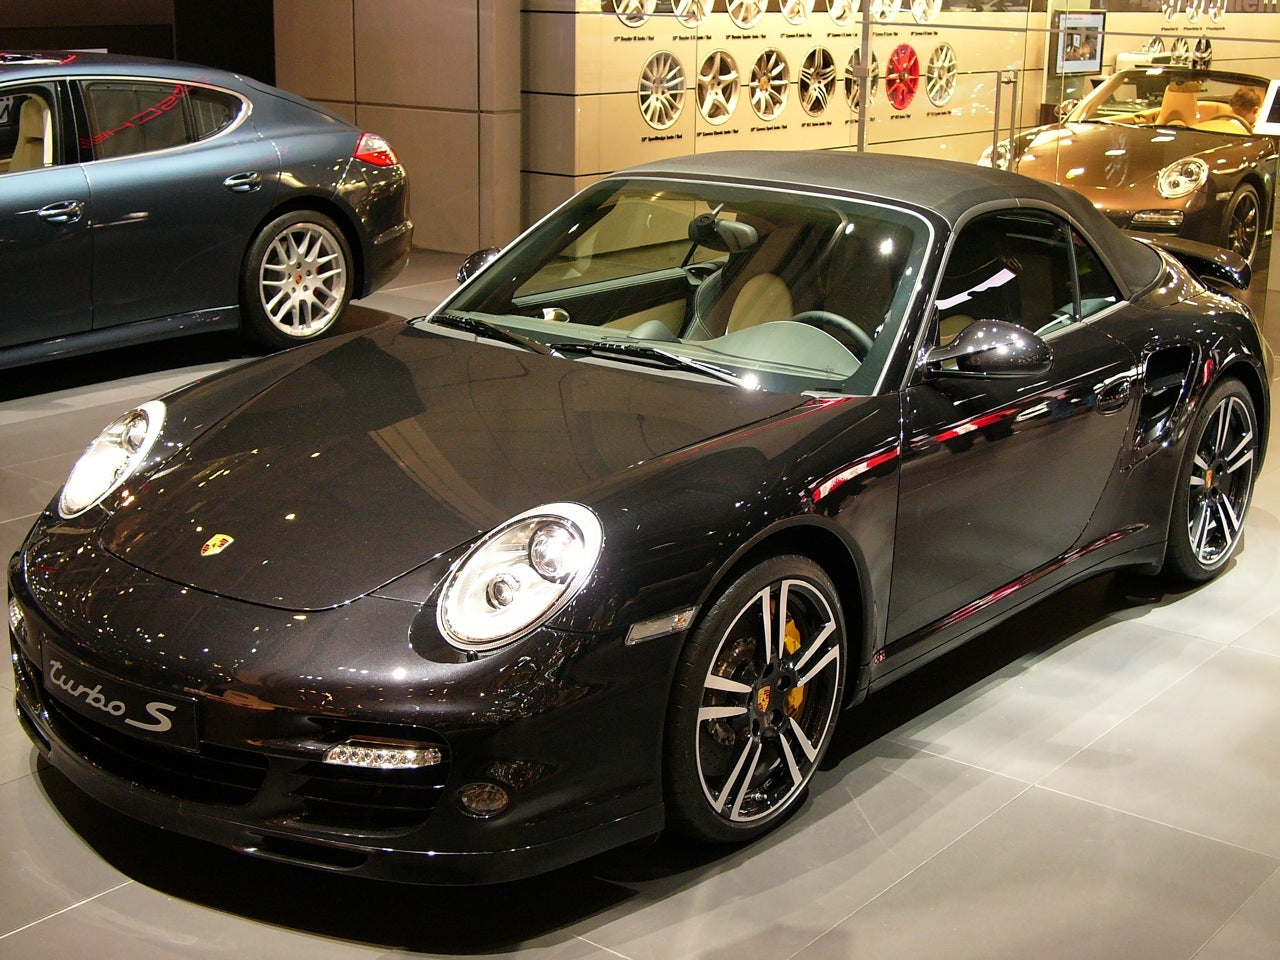 2011 porsche 911 turbo s cabriolet bald spot not pictured. Black Bedroom Furniture Sets. Home Design Ideas